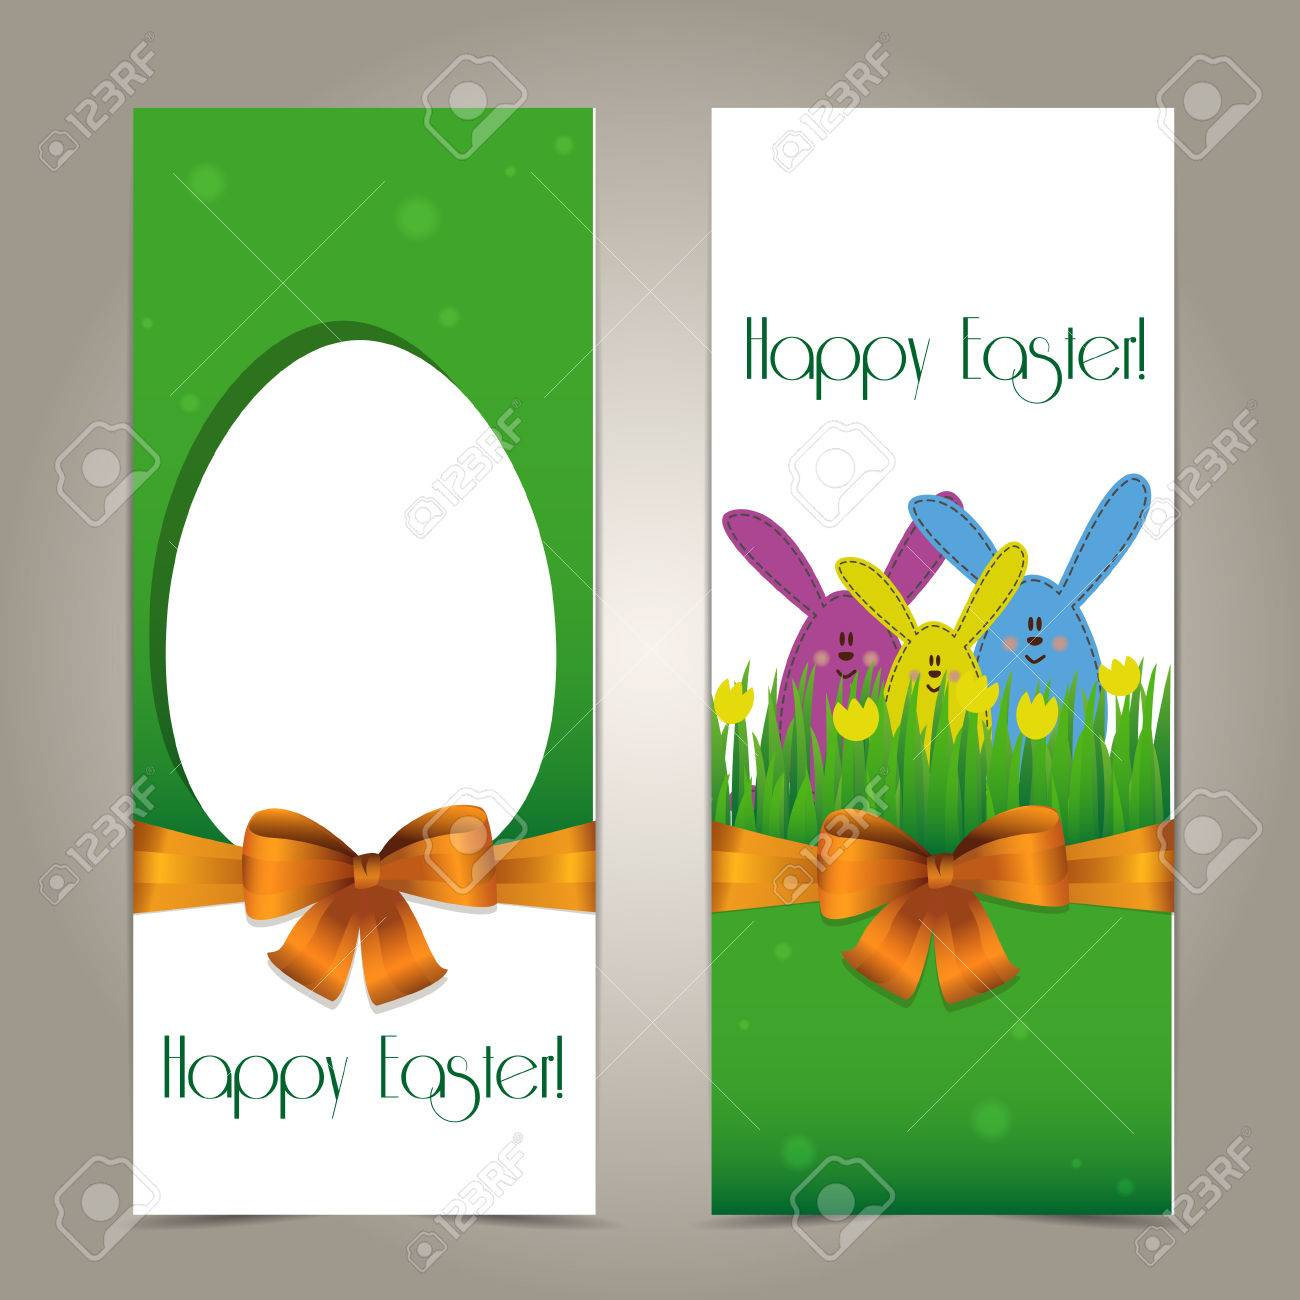 Happy easter cards two funny easter cards with copy space for happy easter cards two funny easter cards with copy space for text stock vector kristyandbryce Choice Image